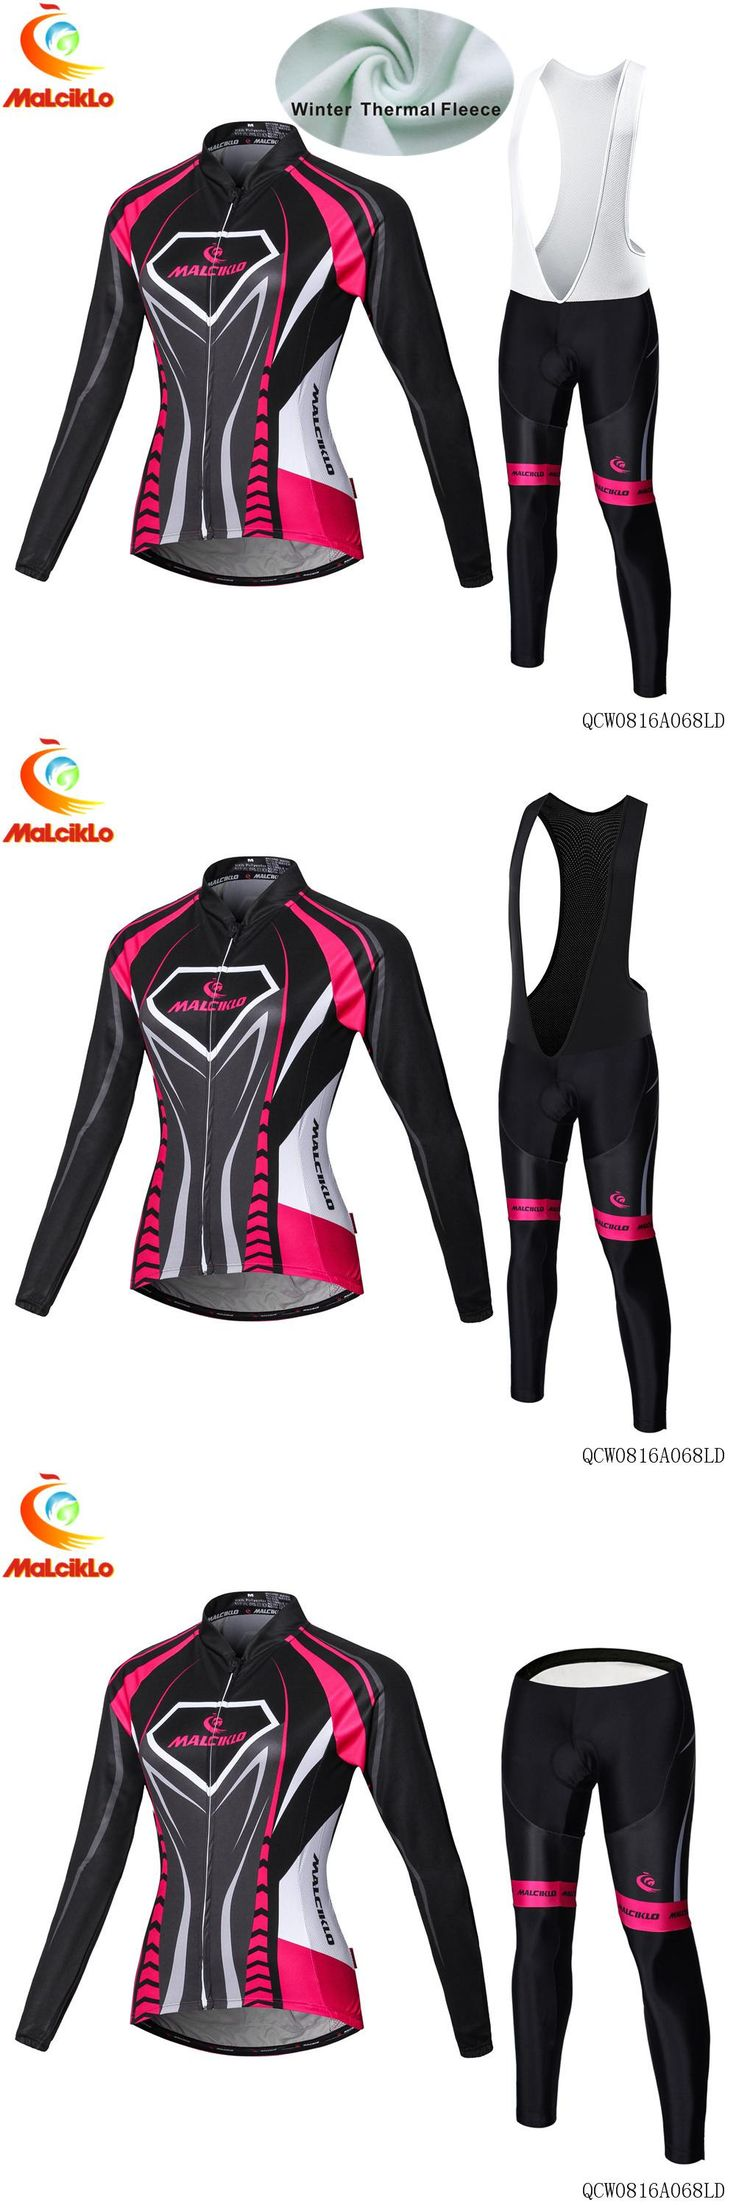 [Visit to Buy] New Cycling Jersey Winter Fleece Women's Long Sleeve Bicycle Cycling Clothing Outdoor Ropa Ciclismo cycling set #Advertisement